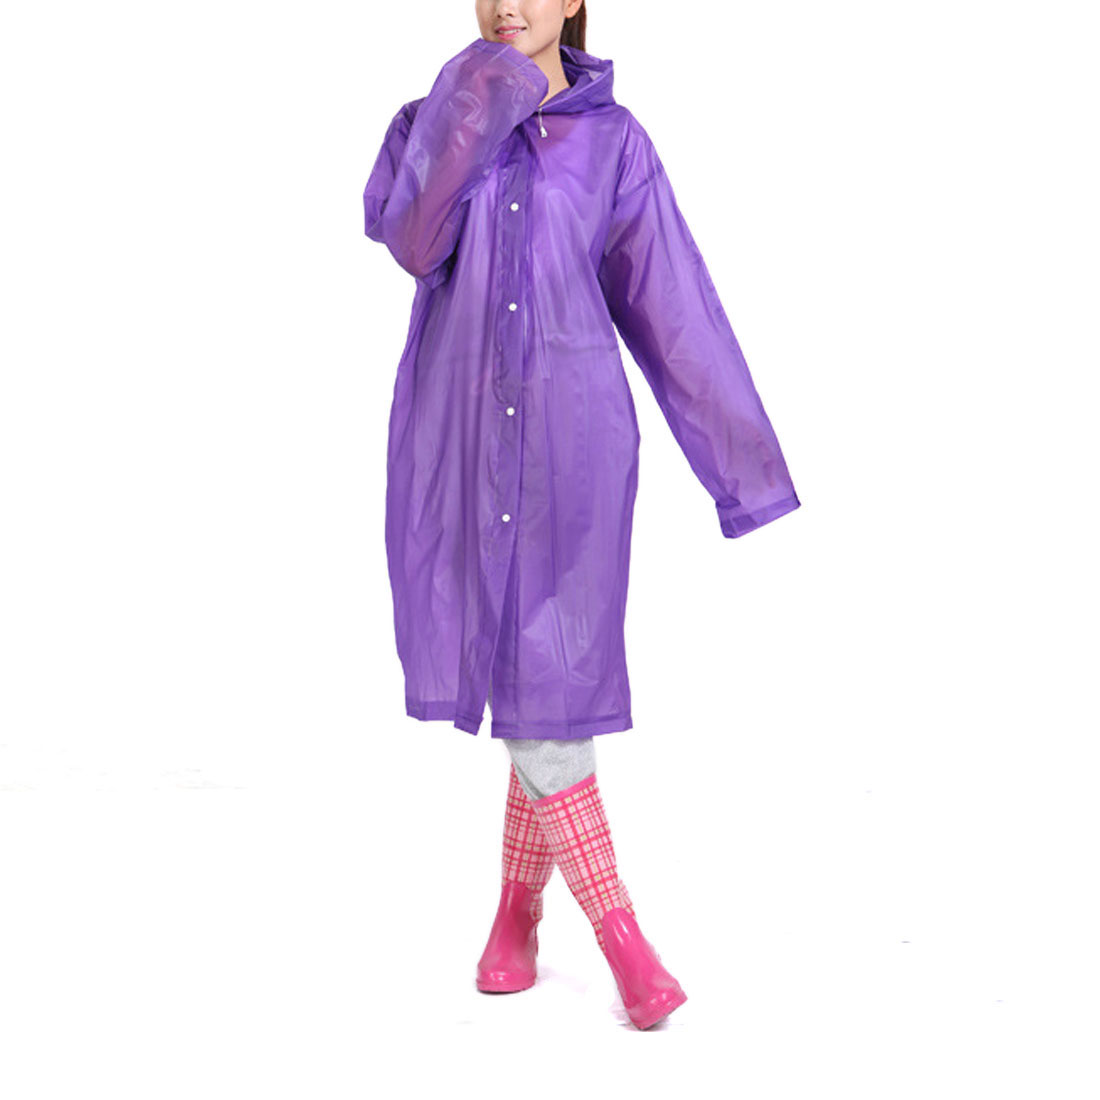 XL Purple Portable EVA Waterproof Adult Raincoat Hooded Rain Poncho for Bicycle